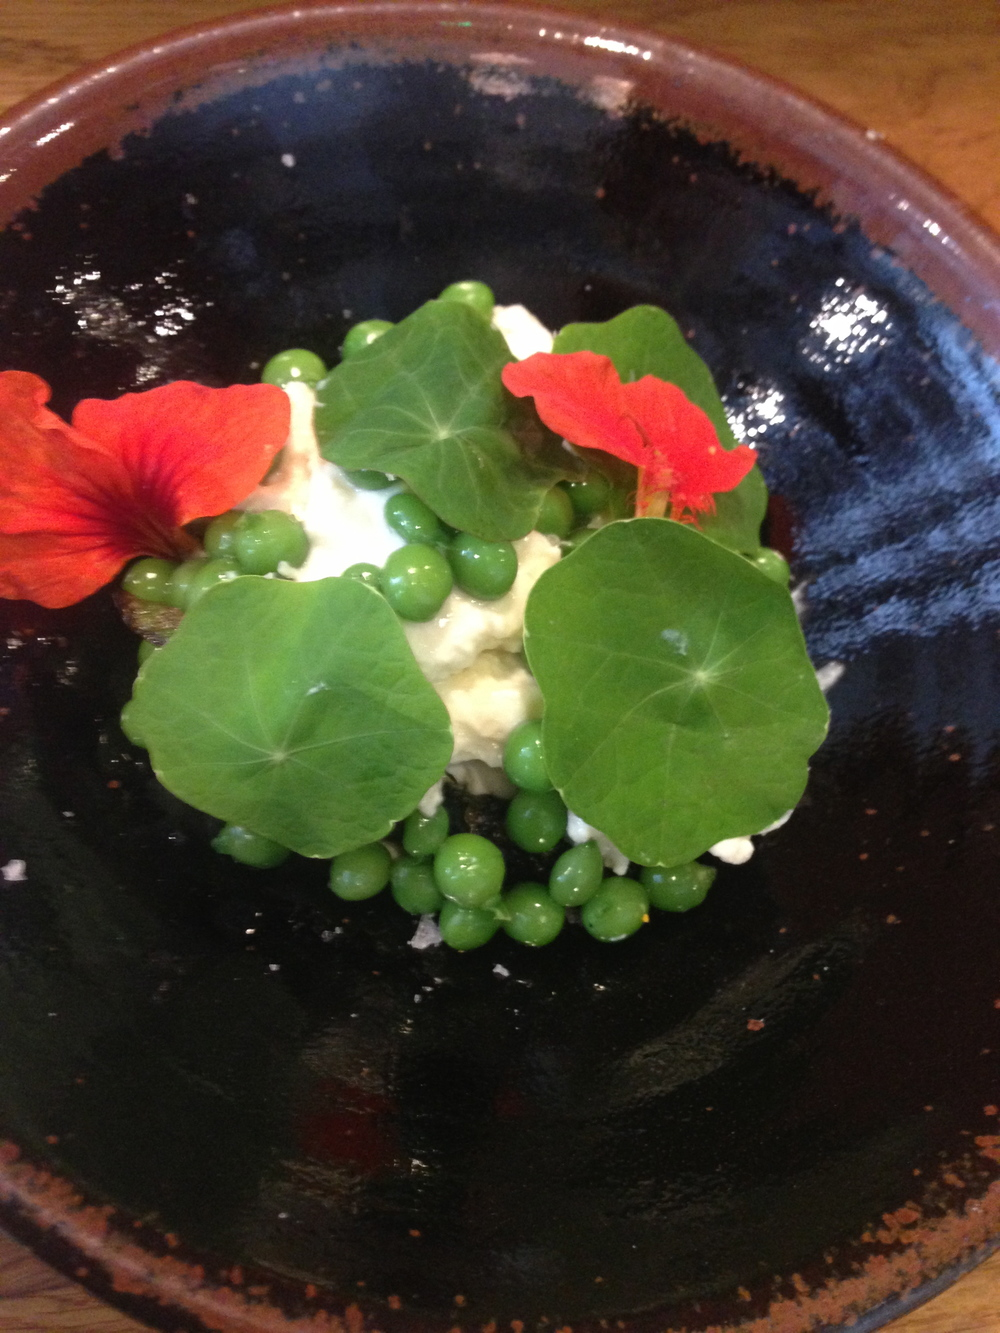 A bowl of soft tofu, peas and nasturtiums at Koya Bar, Soho. Health and pleasure combined.